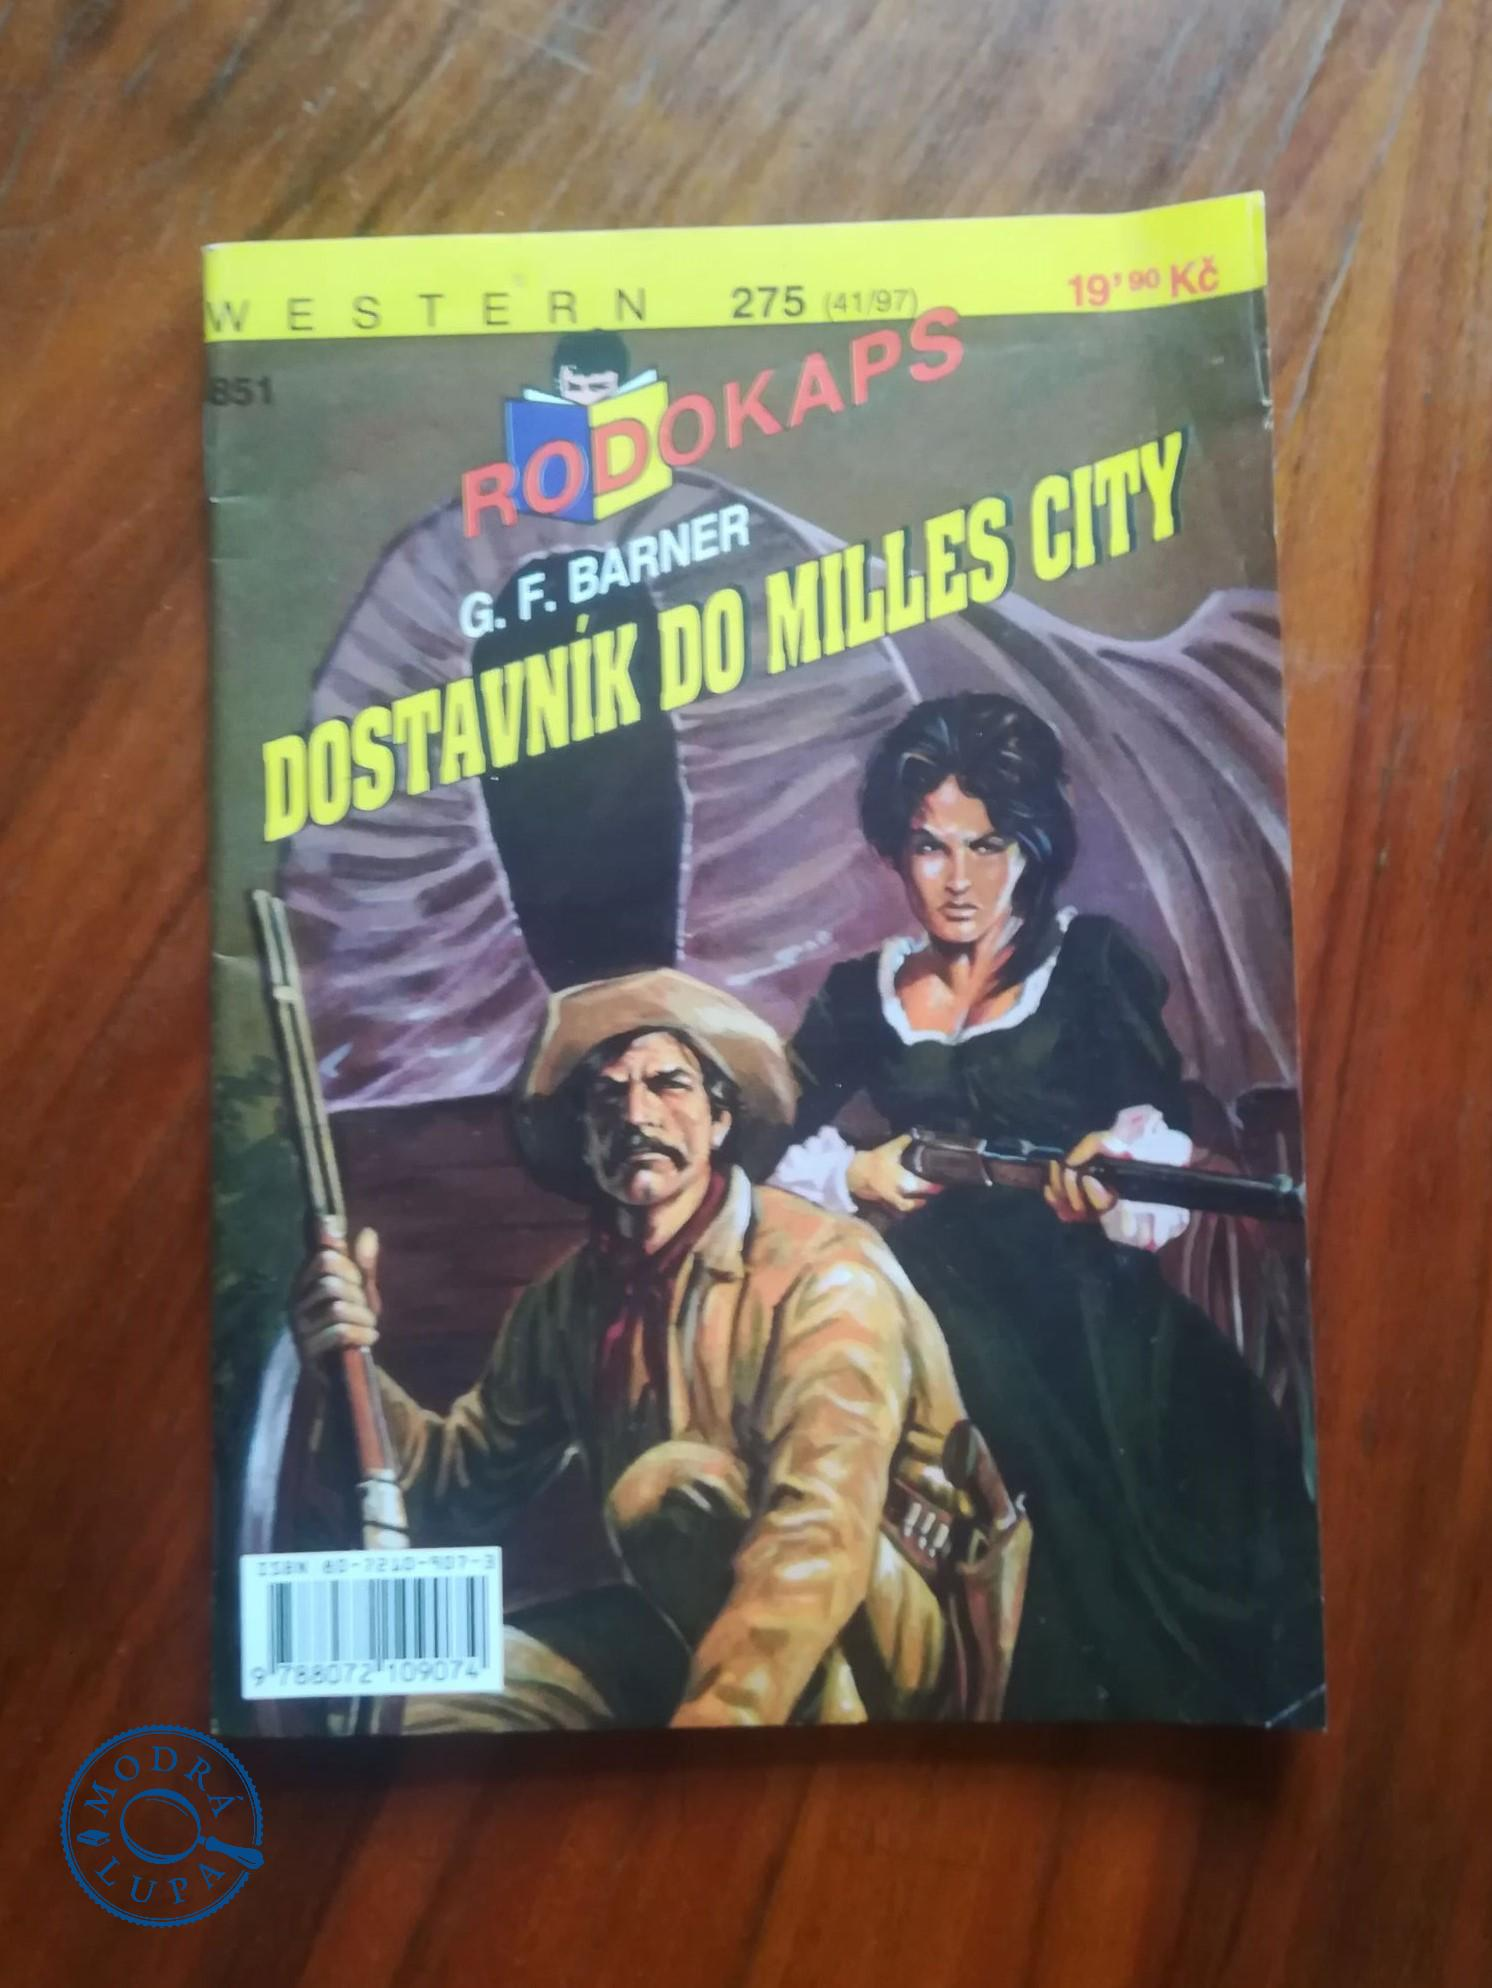 G. F. BARNER - Dostavník do Milles City